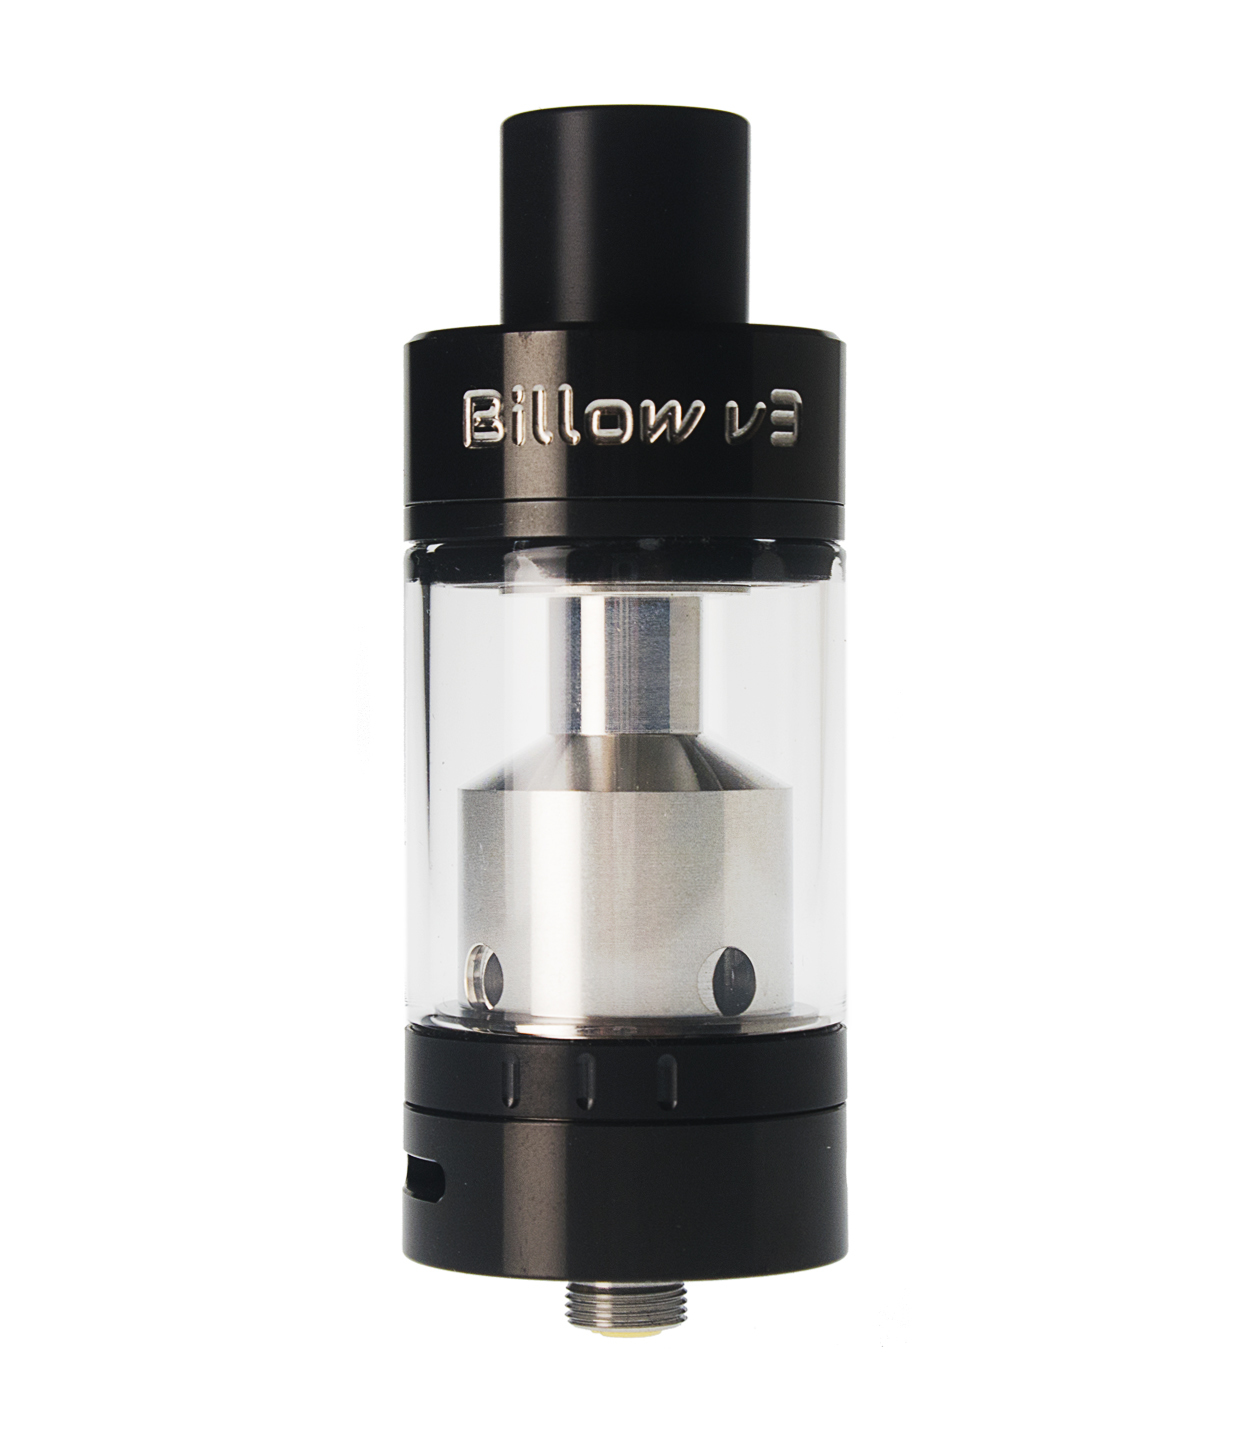 EHPRO: Атомайзер (RTA) Billow V3 Plus фото #1